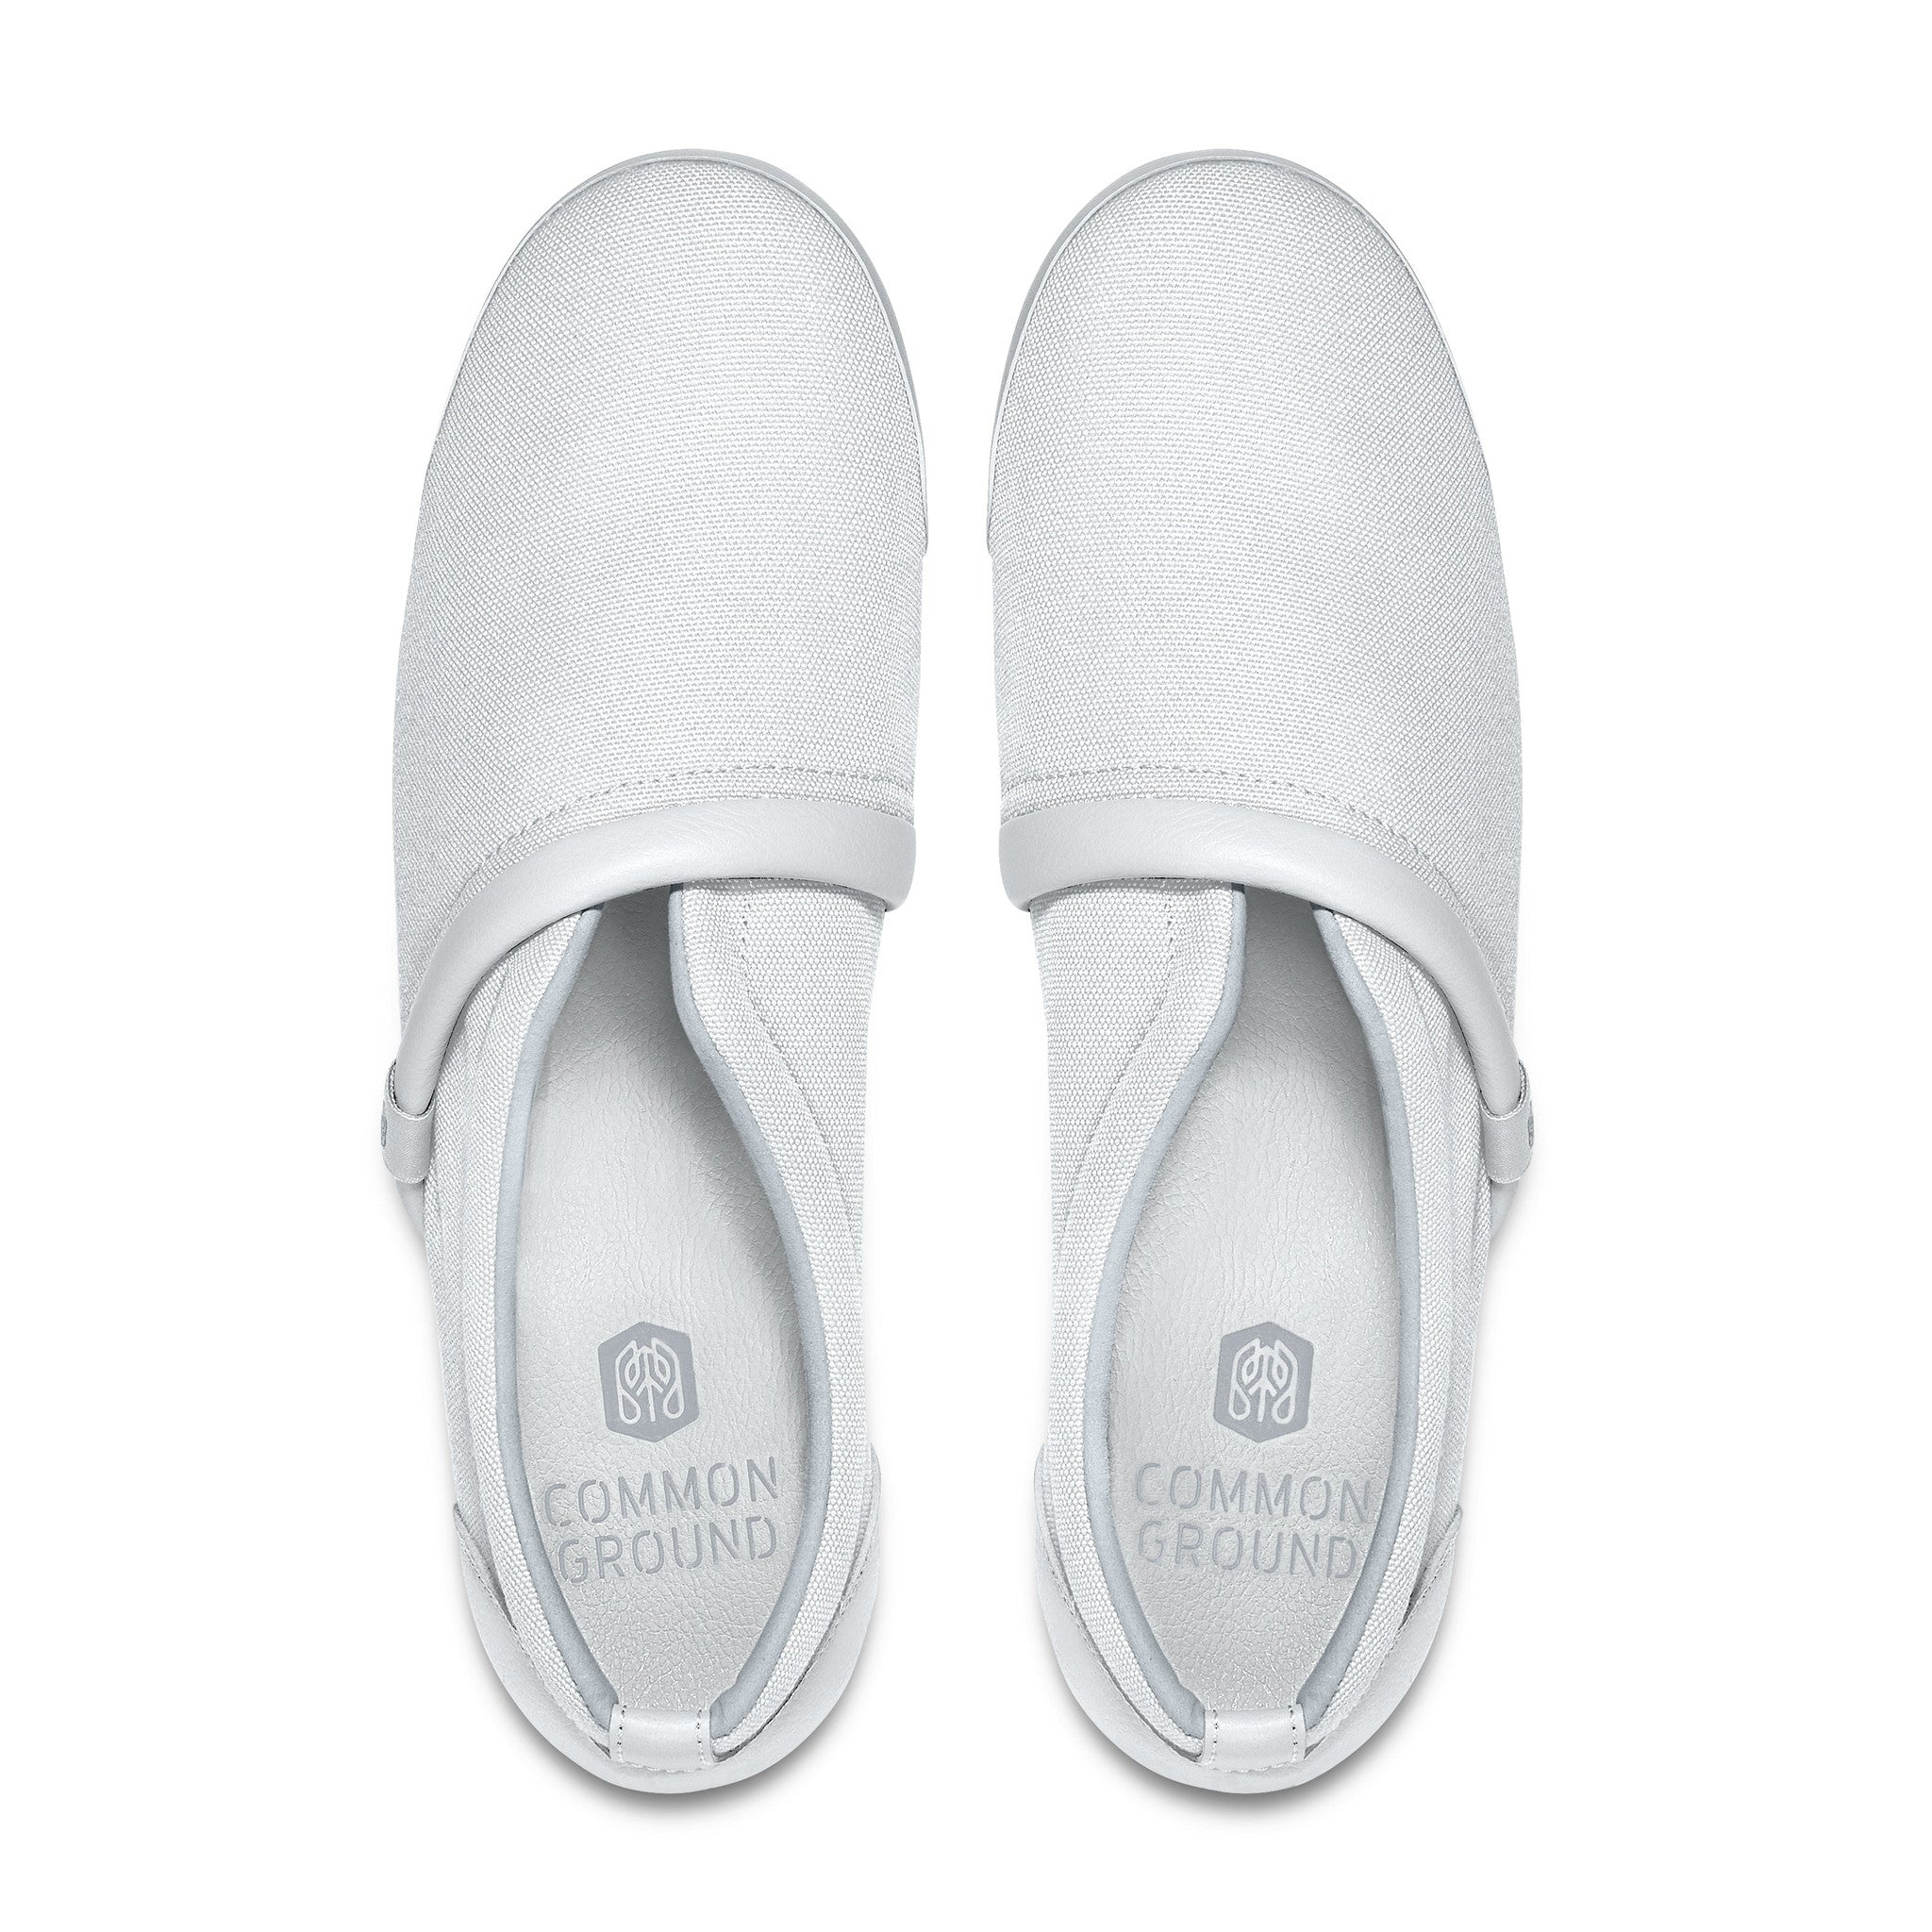 Bright_White - Common Ground Footwear Shoes Top View